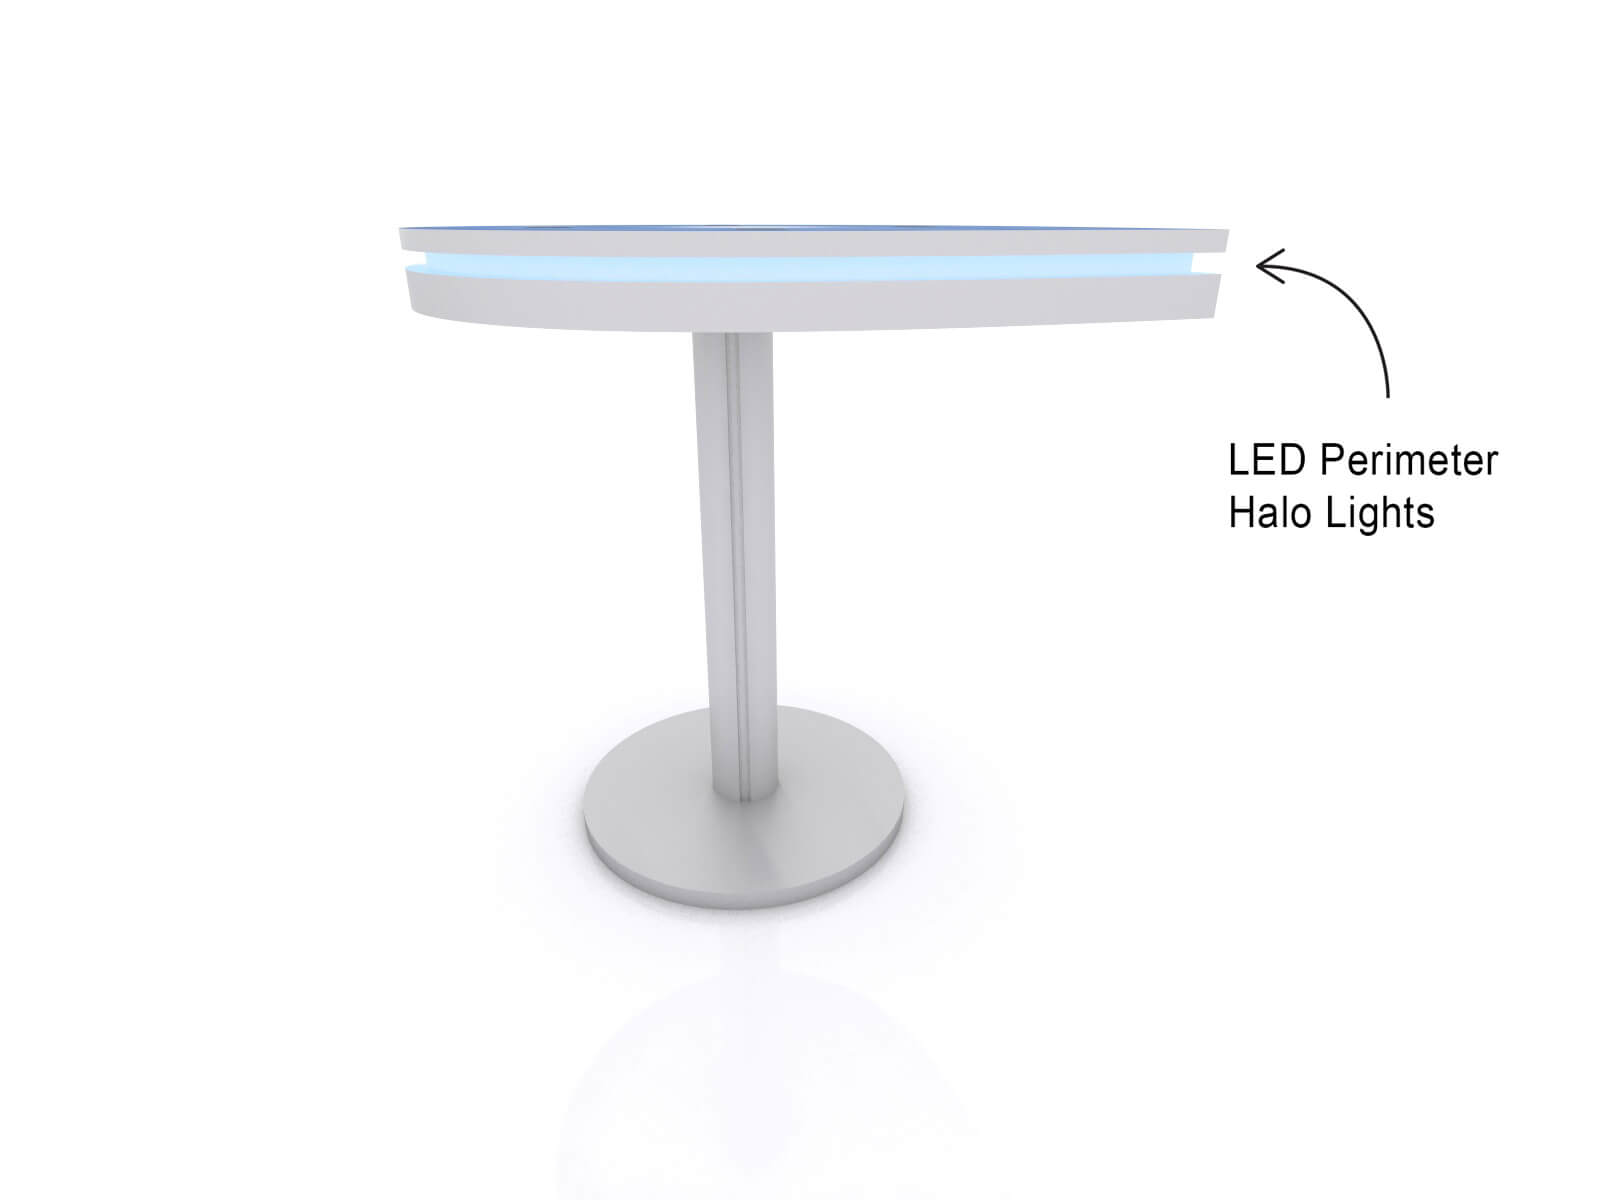 MOD-1457 Trade Show Wireless Charging Station - Image 3